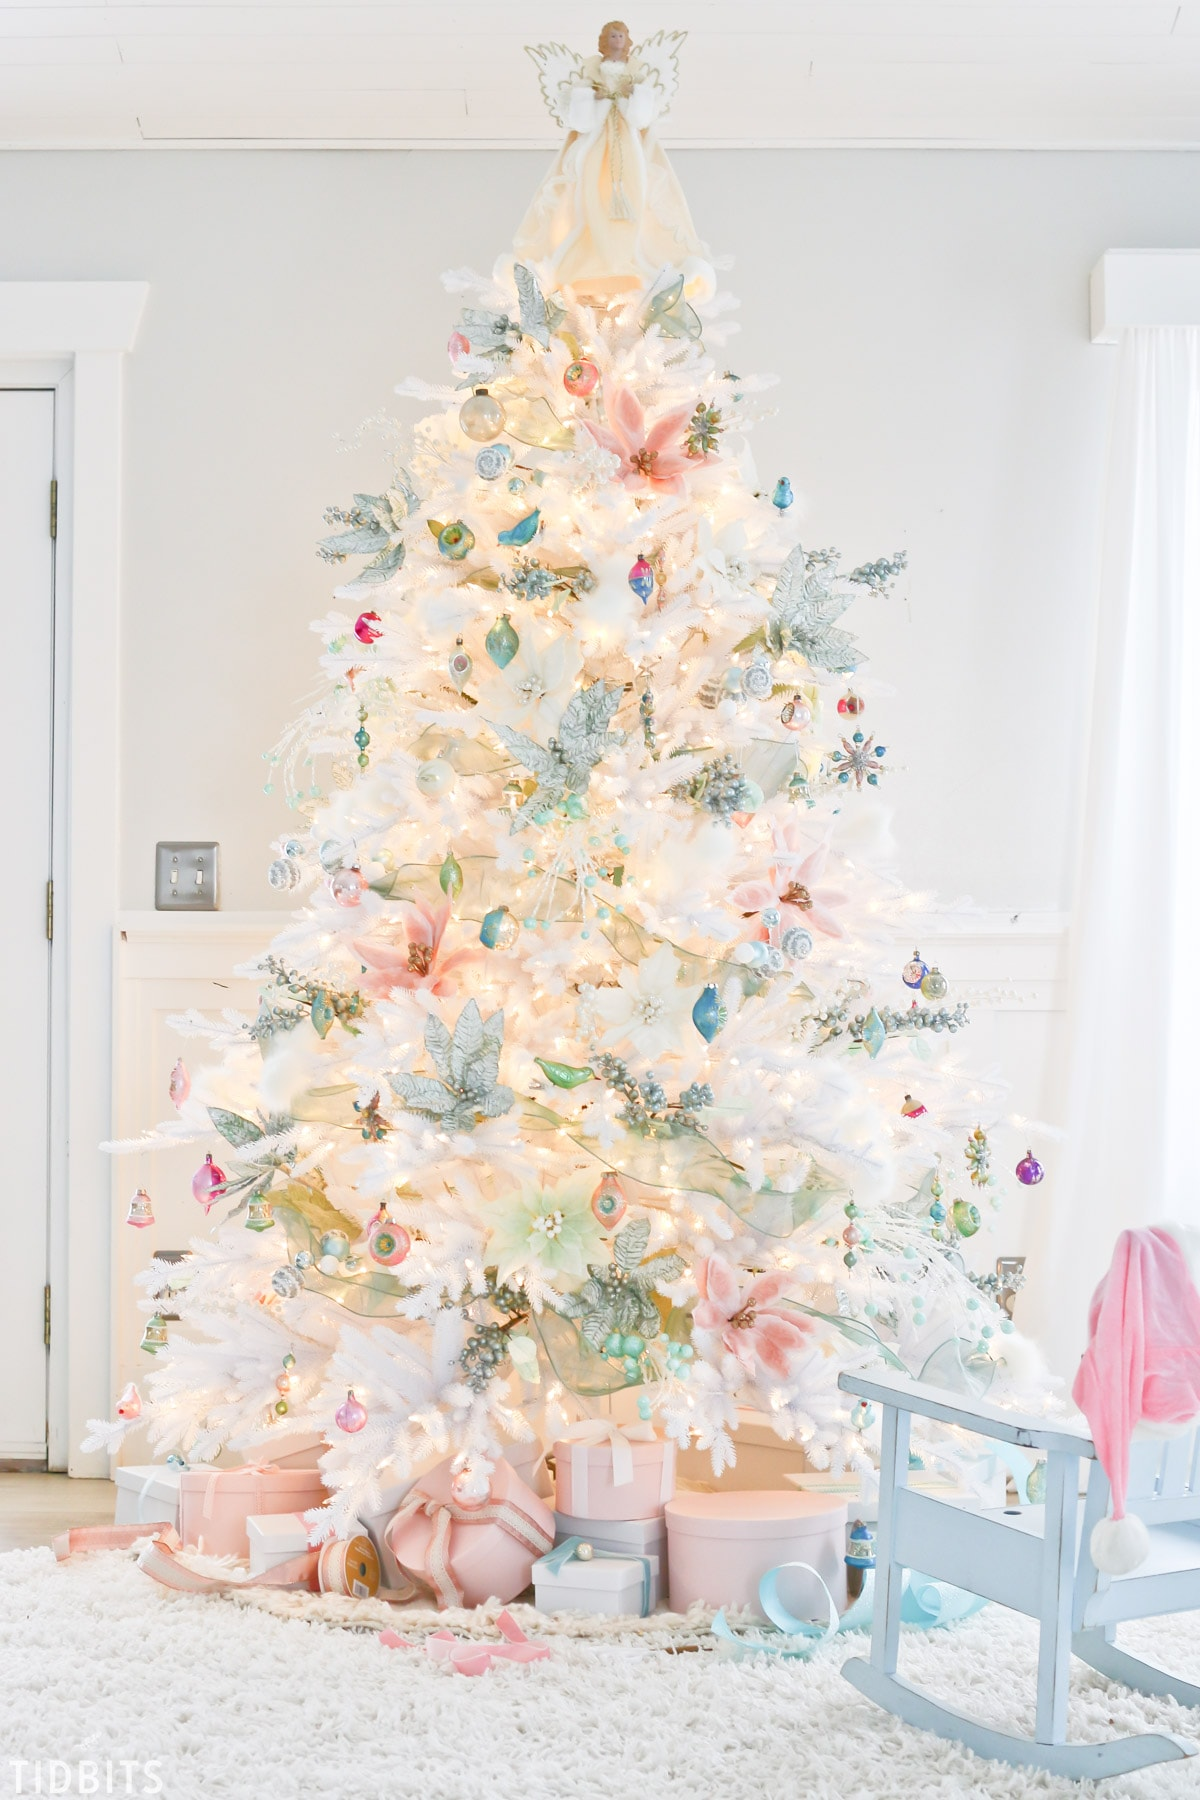 Cami of Tidbits' Denali White Christmas Tree